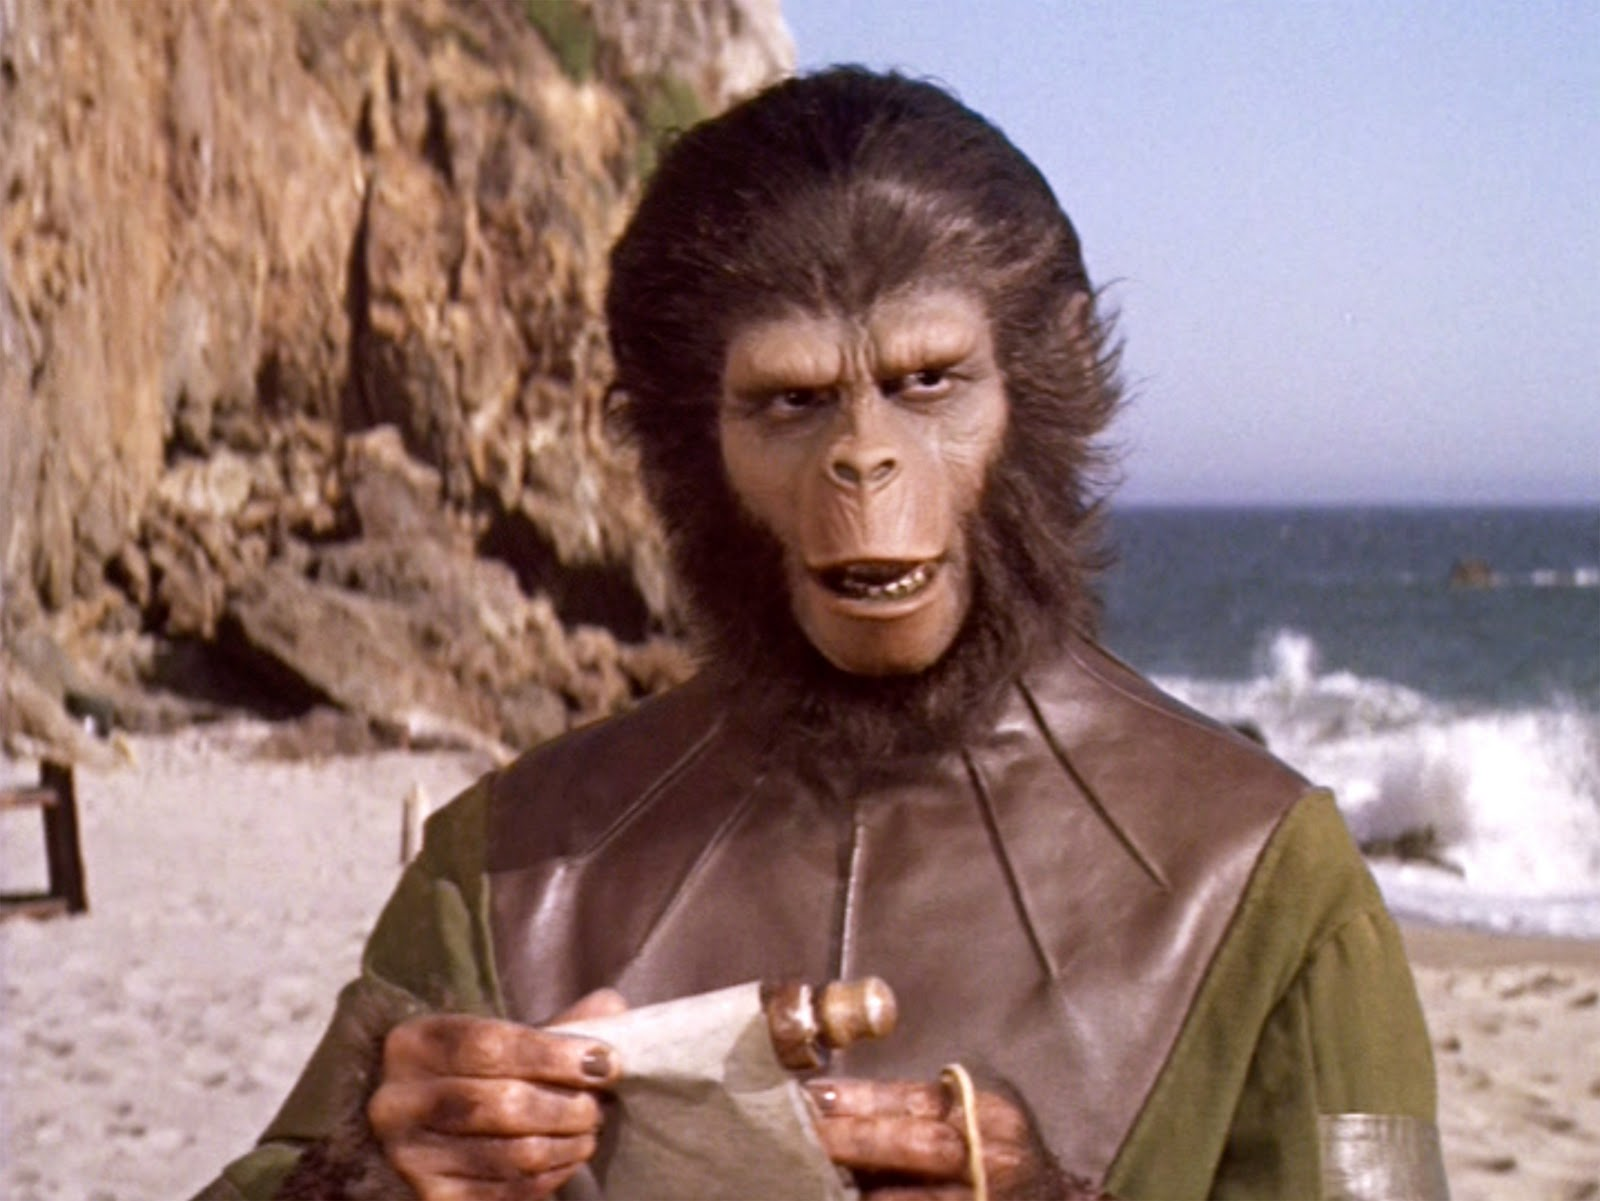 Archives Of The Apes: Planet Of The Apes (1968): Zira And ...